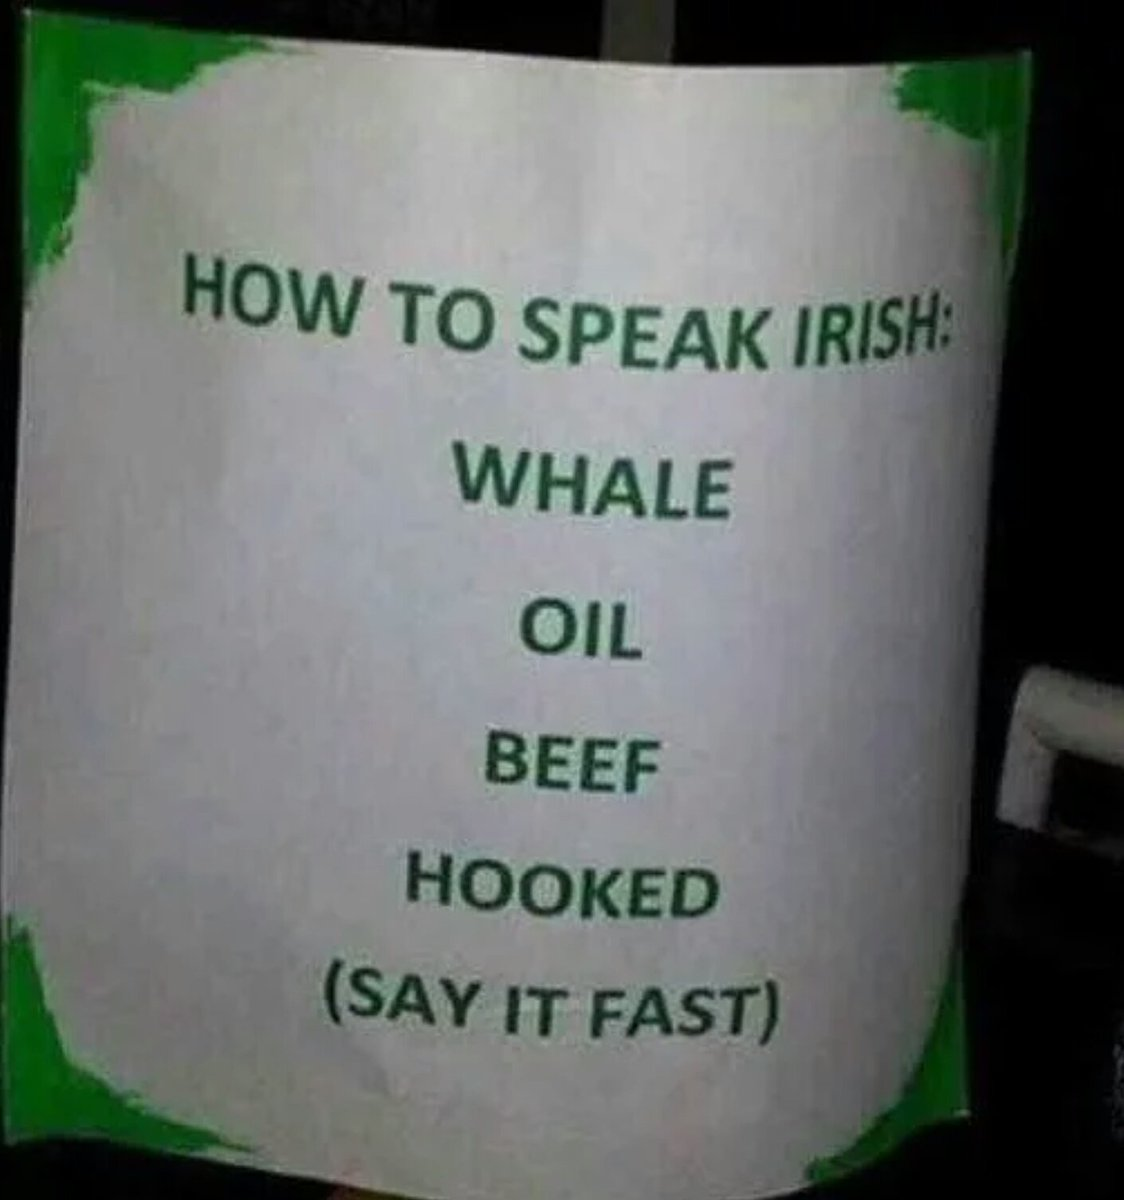 Meanwhile in Ireland ☘️